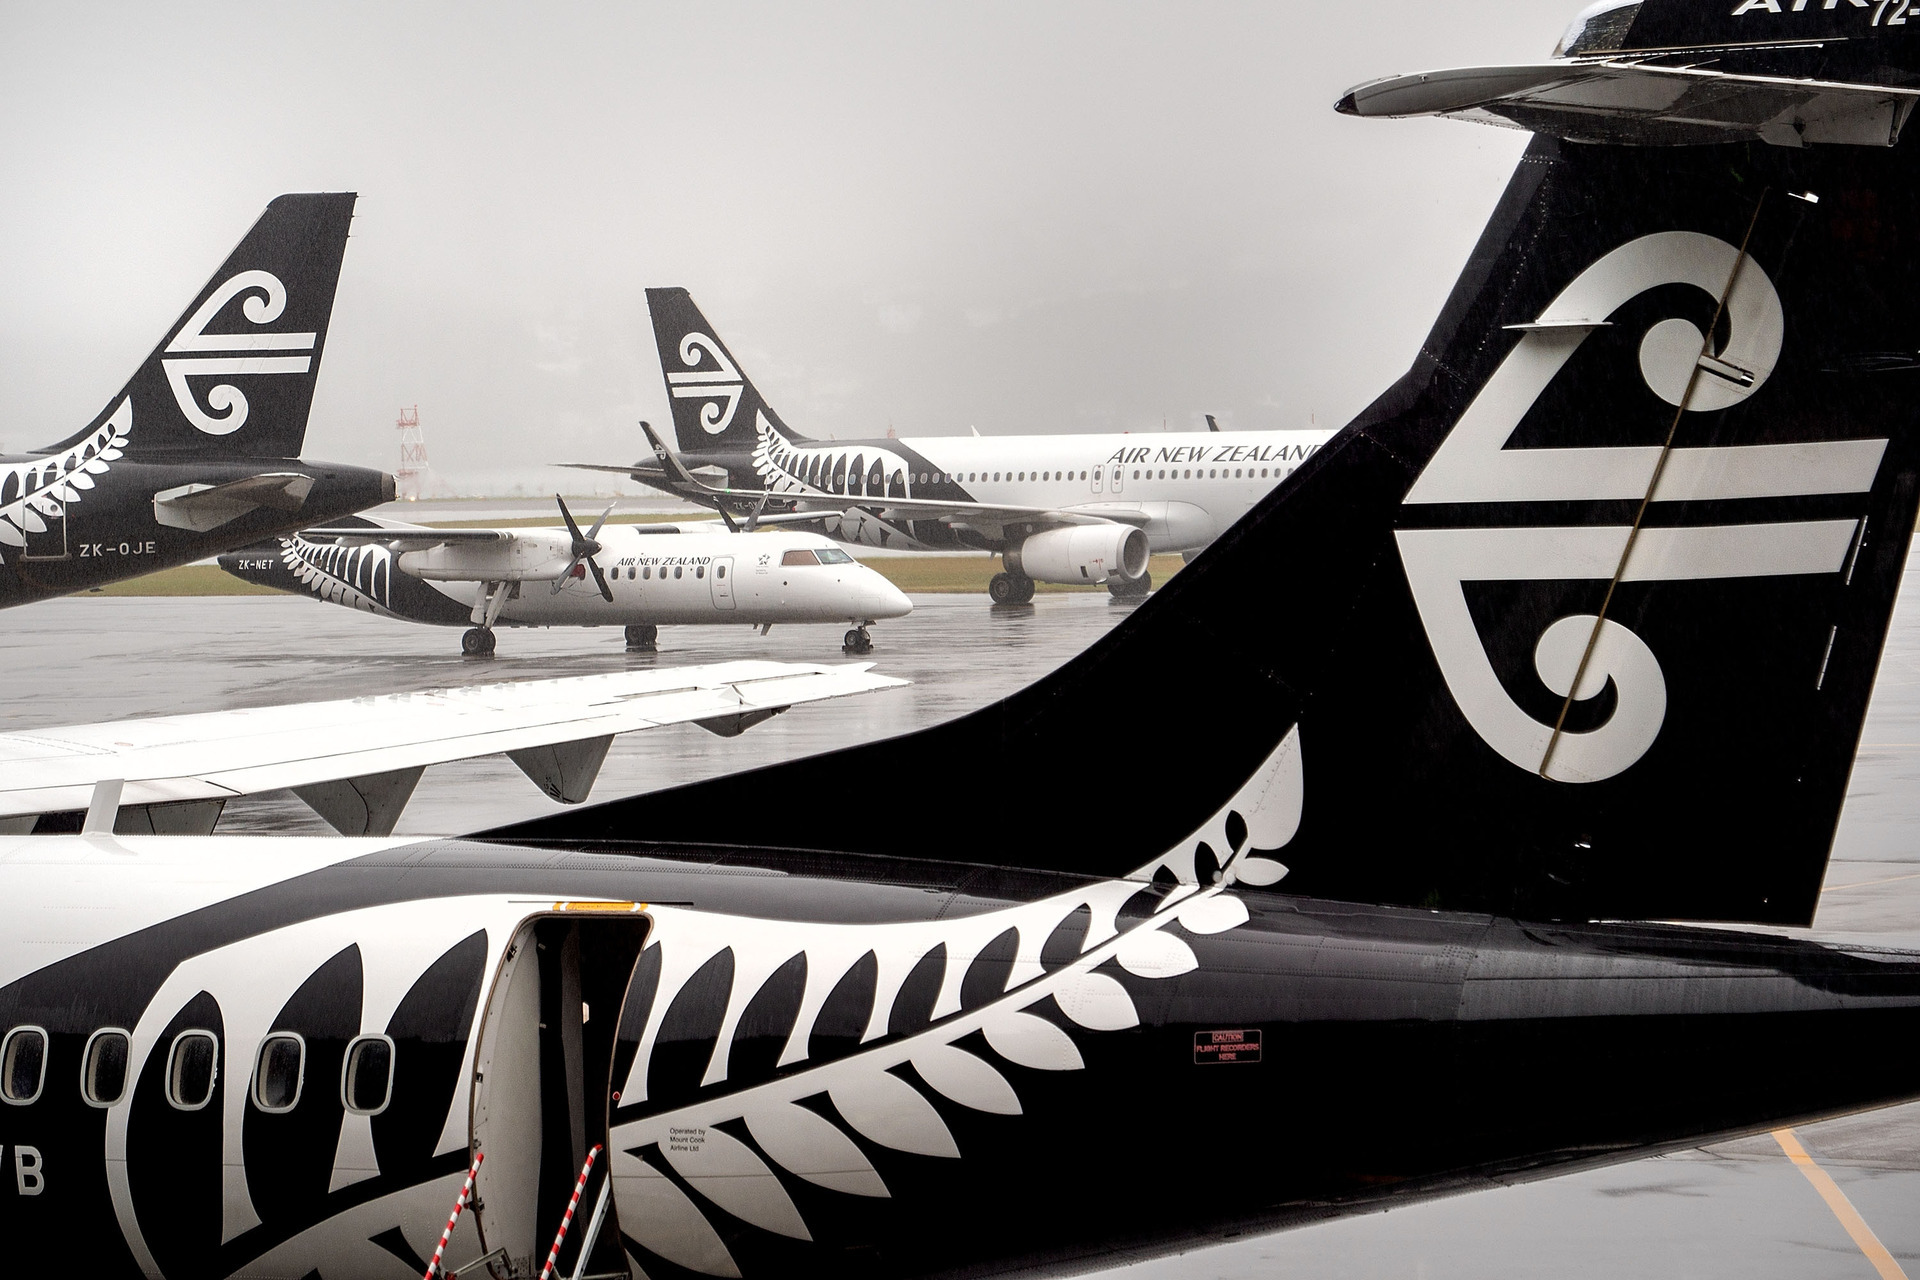 Wild weather on way: Air NZ cancels morning flights to Wellington